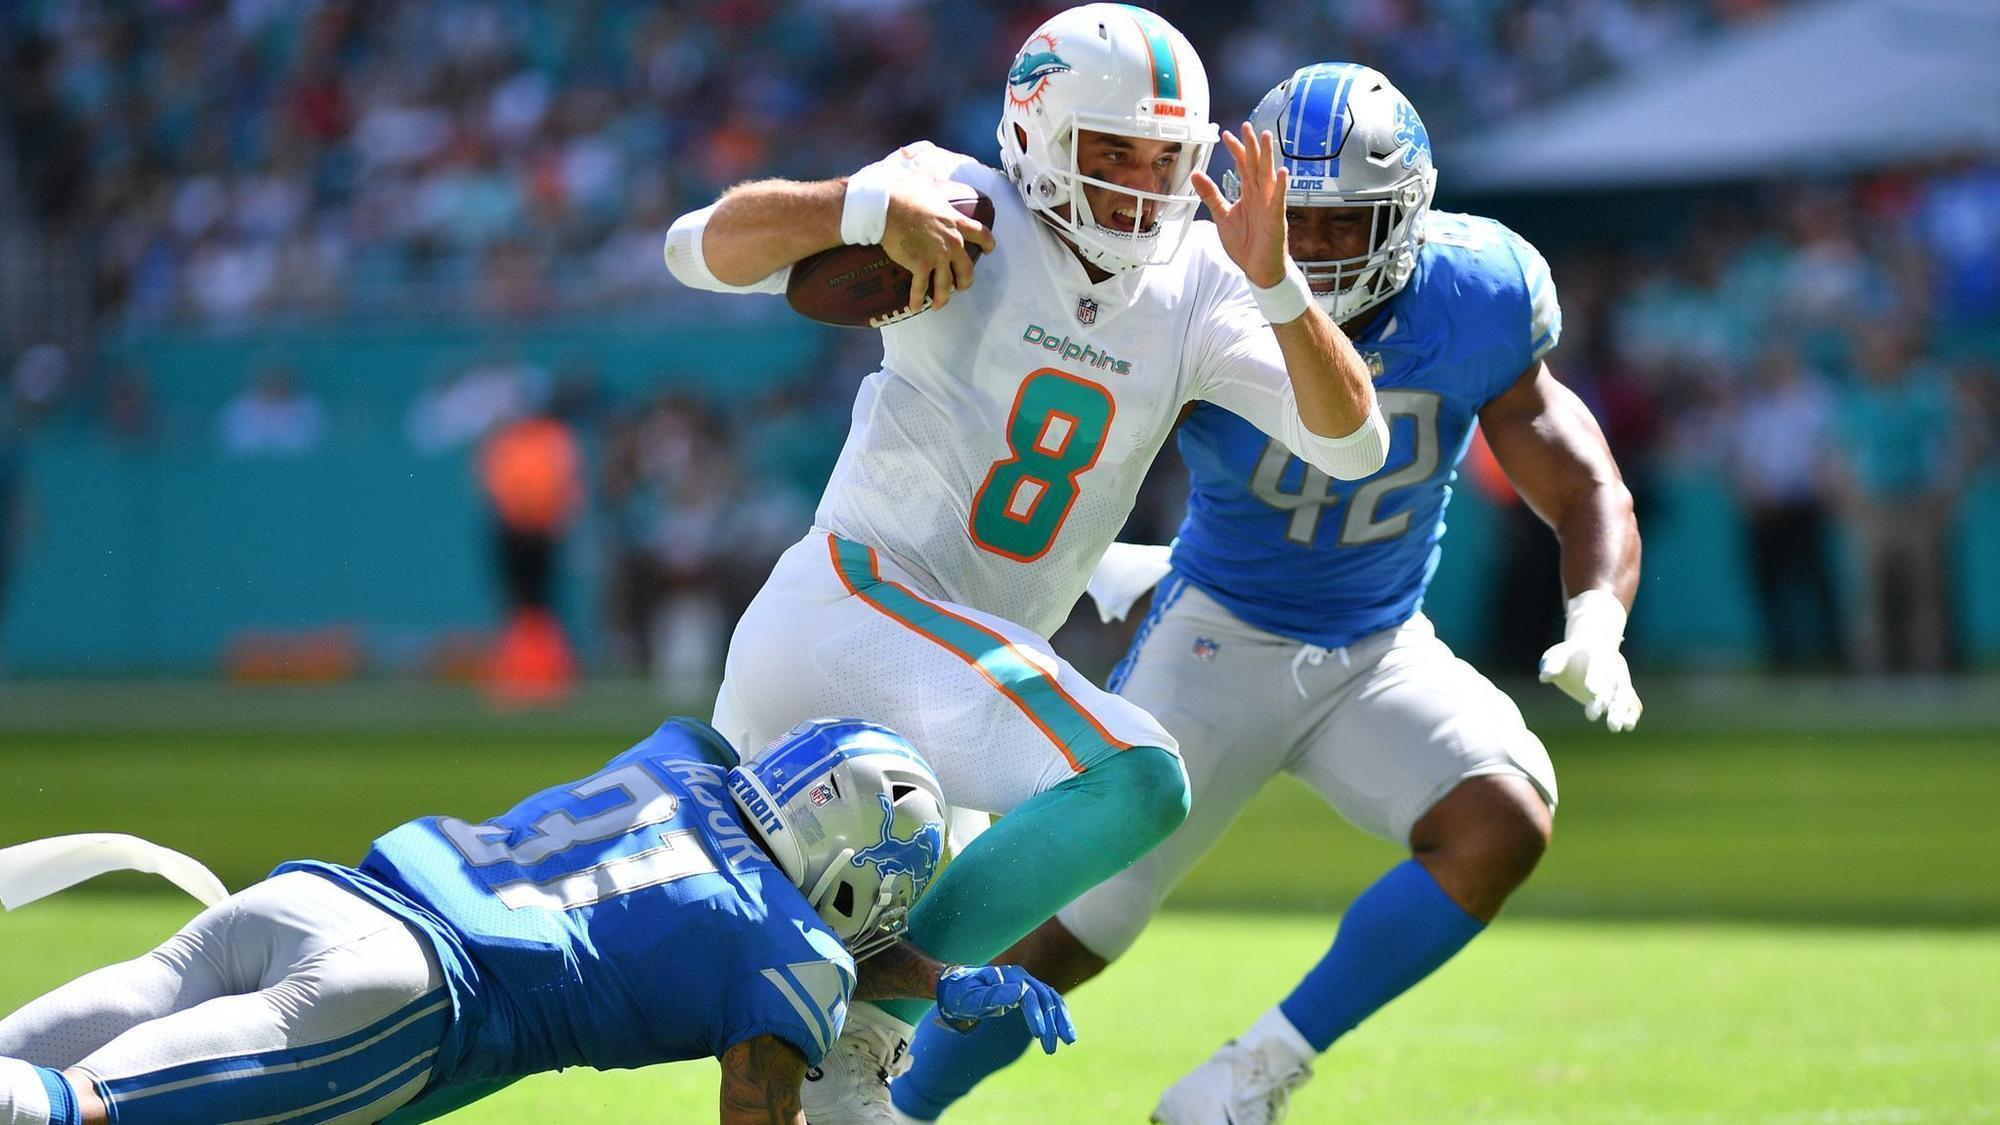 Fl-sp-hyde10-dolphins-lions-thoughts-20181021